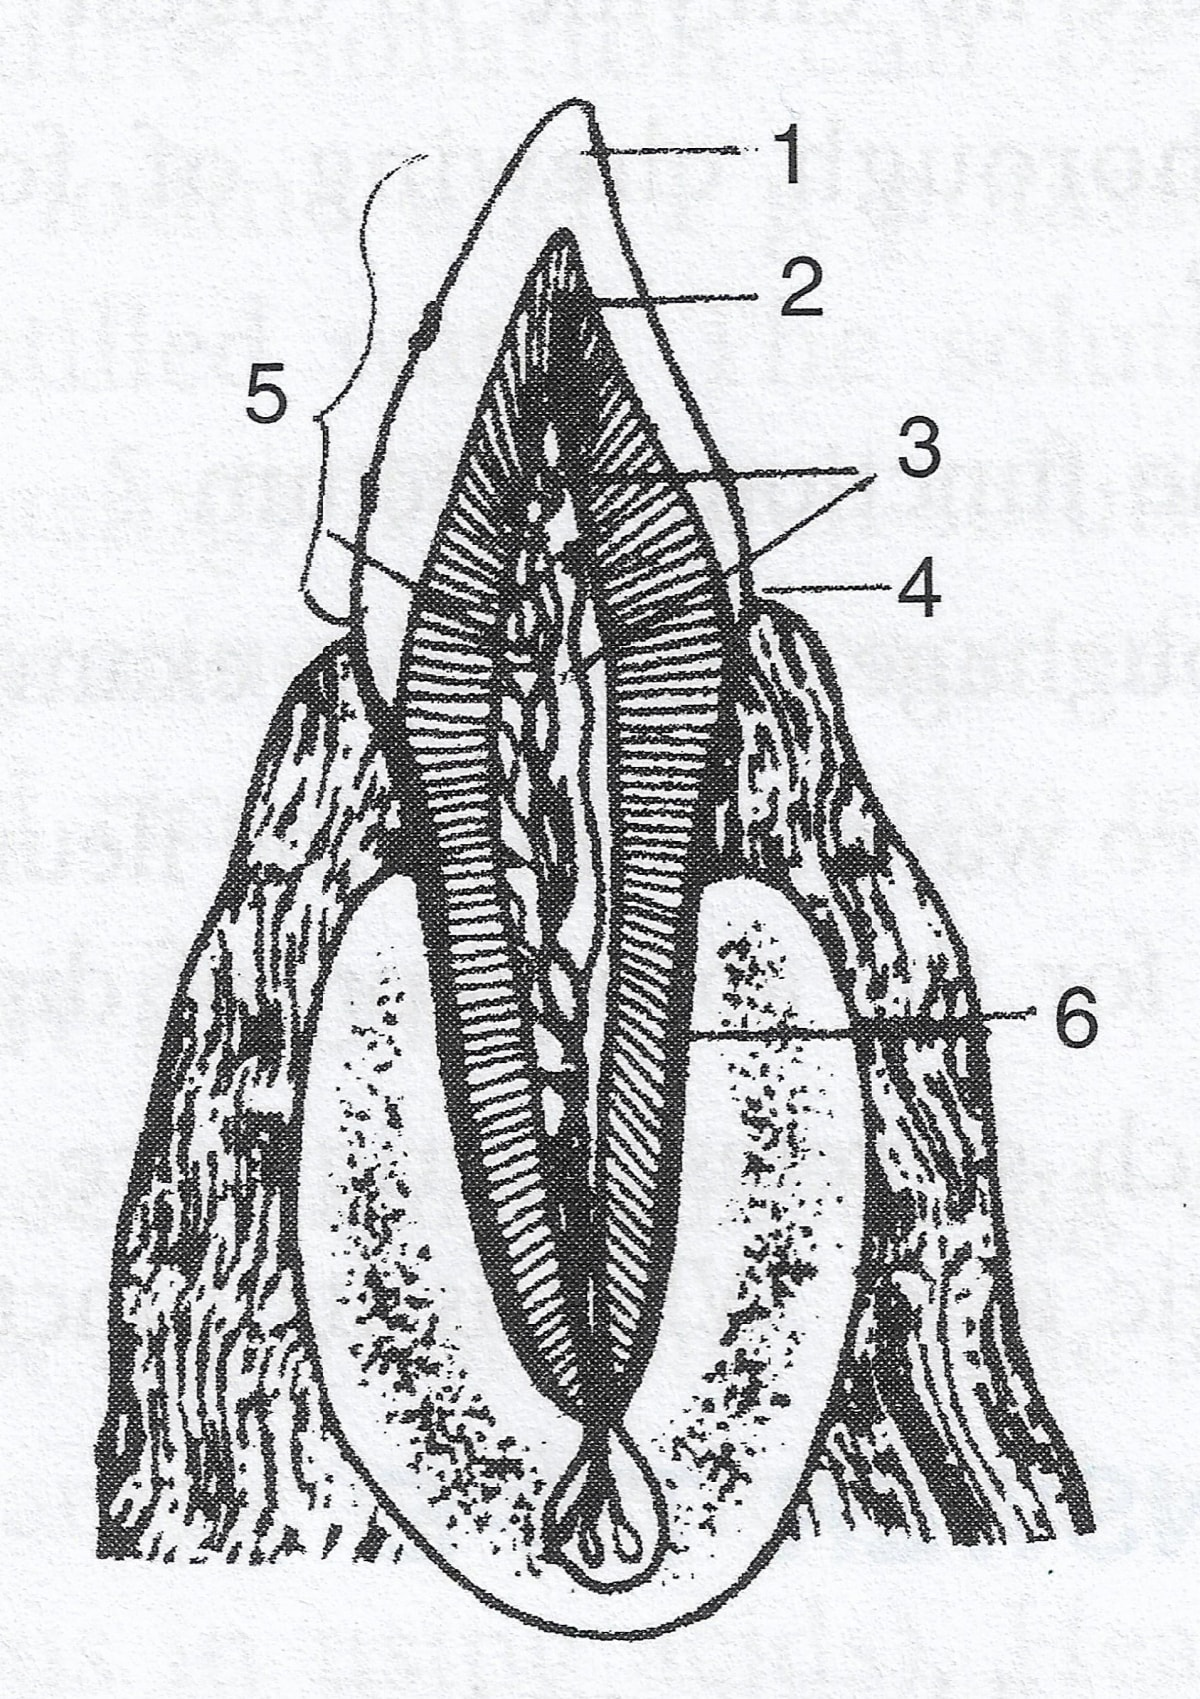 Name the parts labeled 1, 2, 3, 4, 5 and 6. Identify the tooth and give a reason to support your answer. Digestive System, Concise Biology ICSE Class 9.